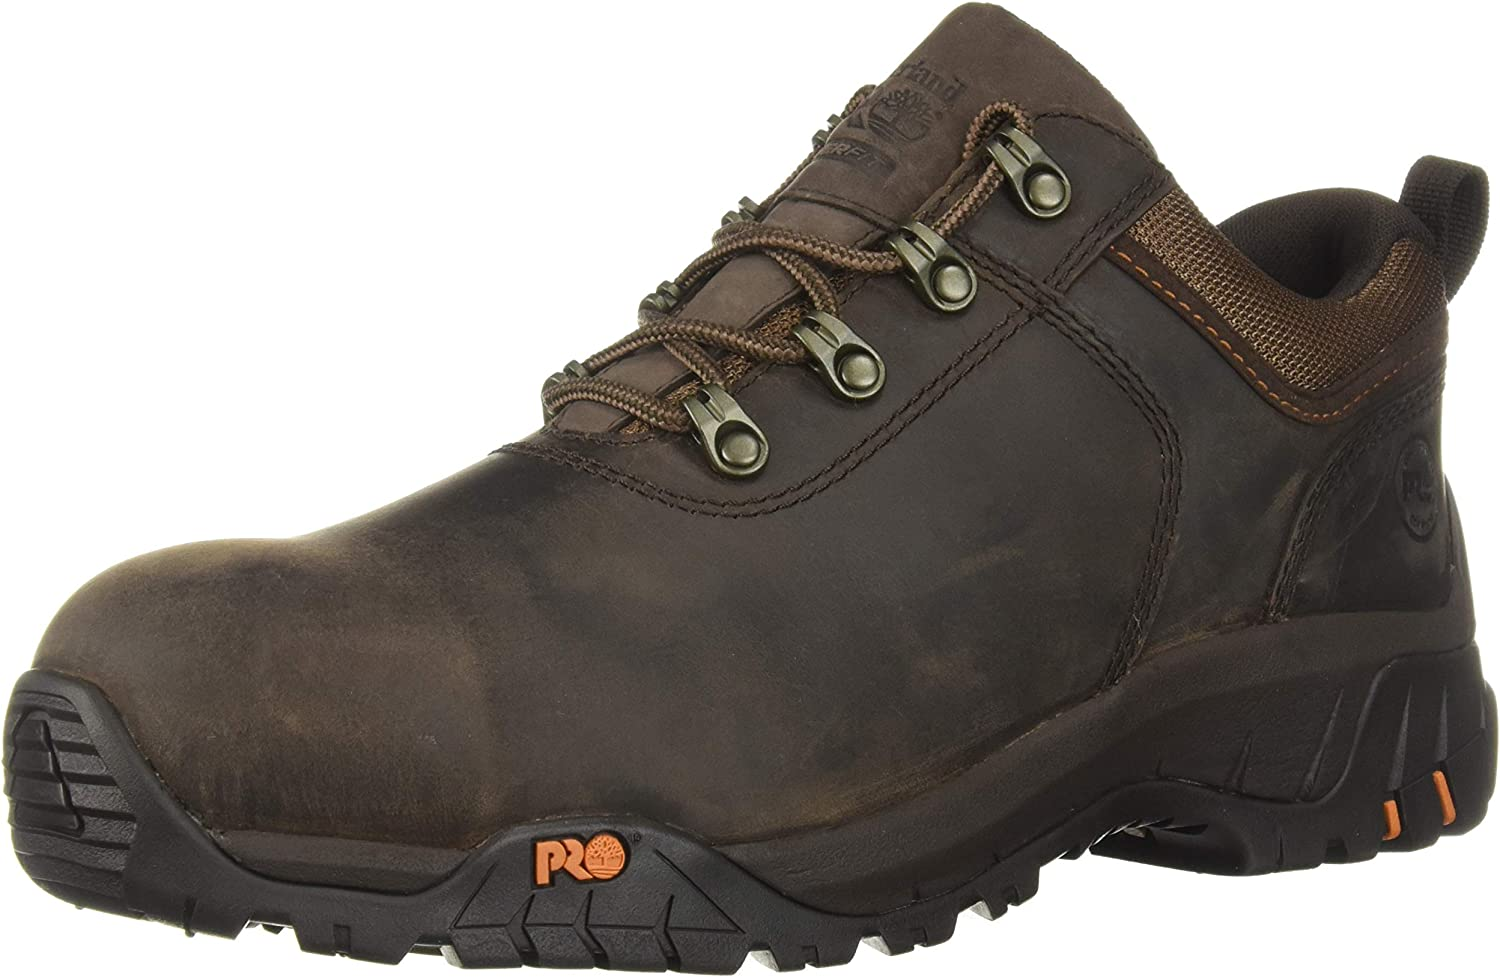 Timberland PRO Men's Outroader Oxford Composite Toe Industrial Boot, Brown, 13 W US